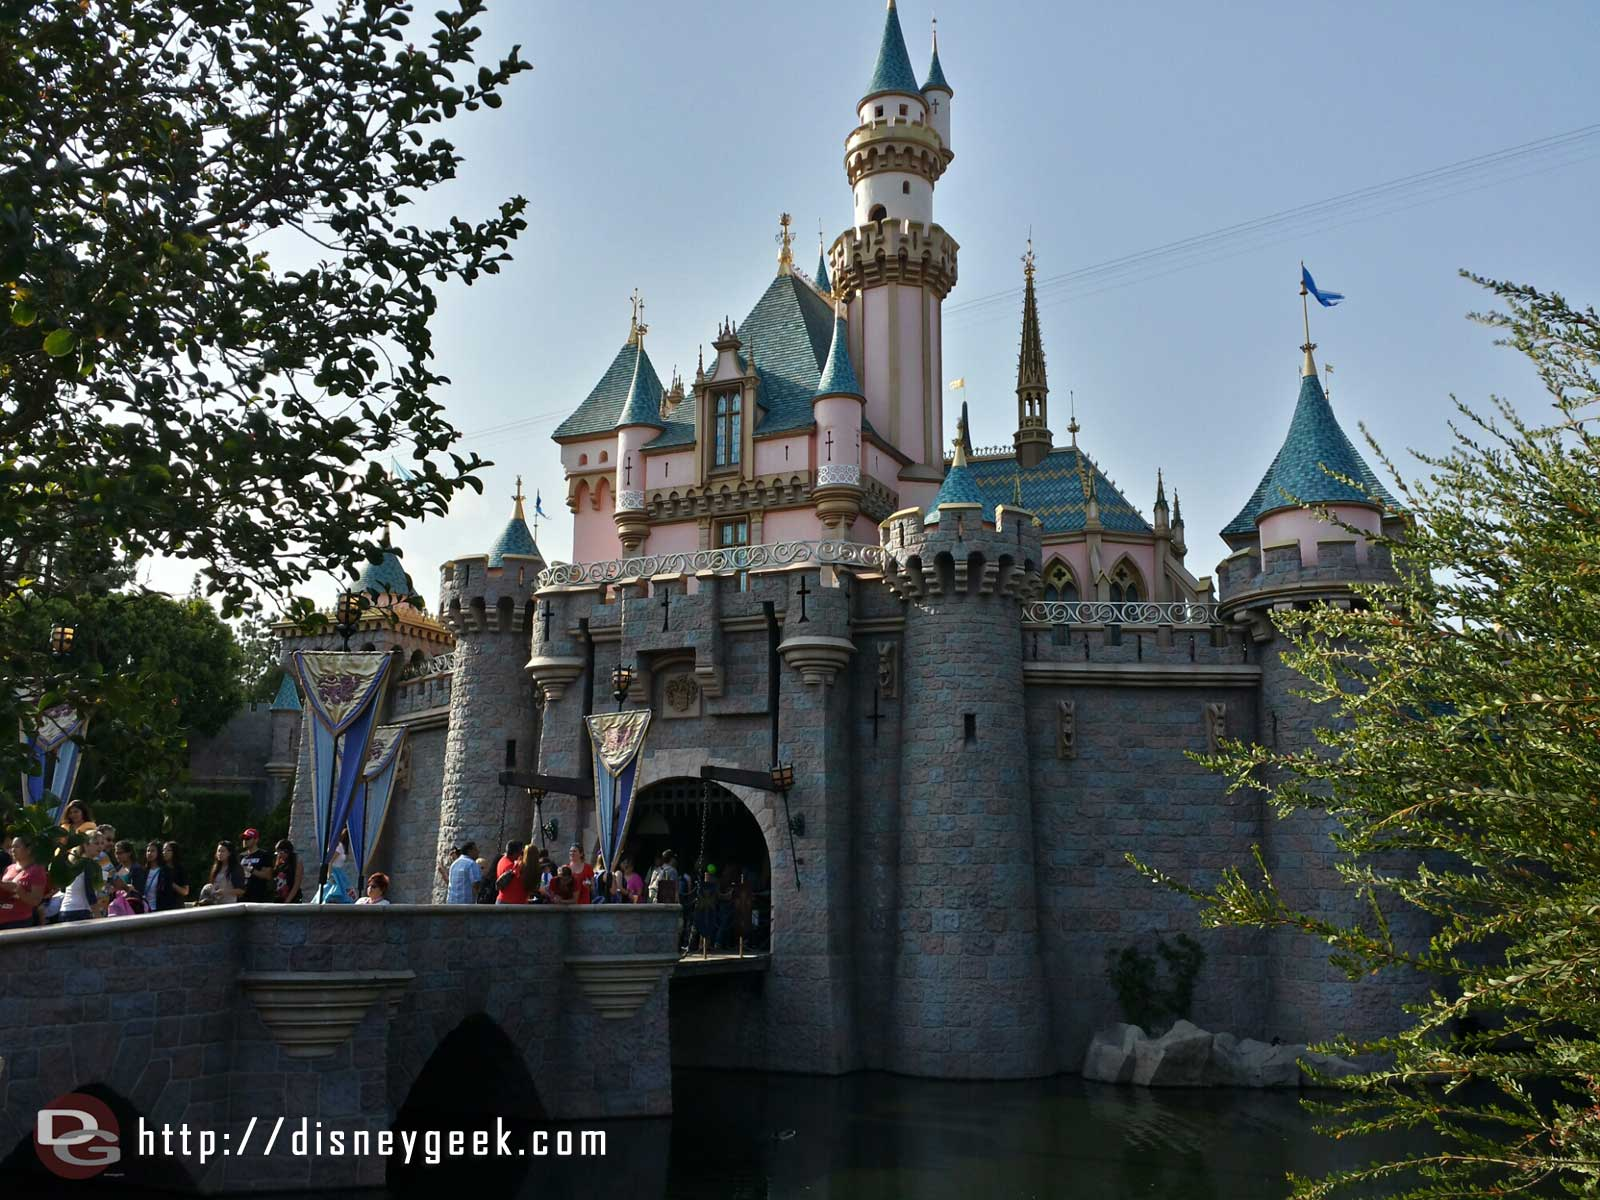 Sleeping Beauty Castle #Disneyland #Disney24  #DisneySide